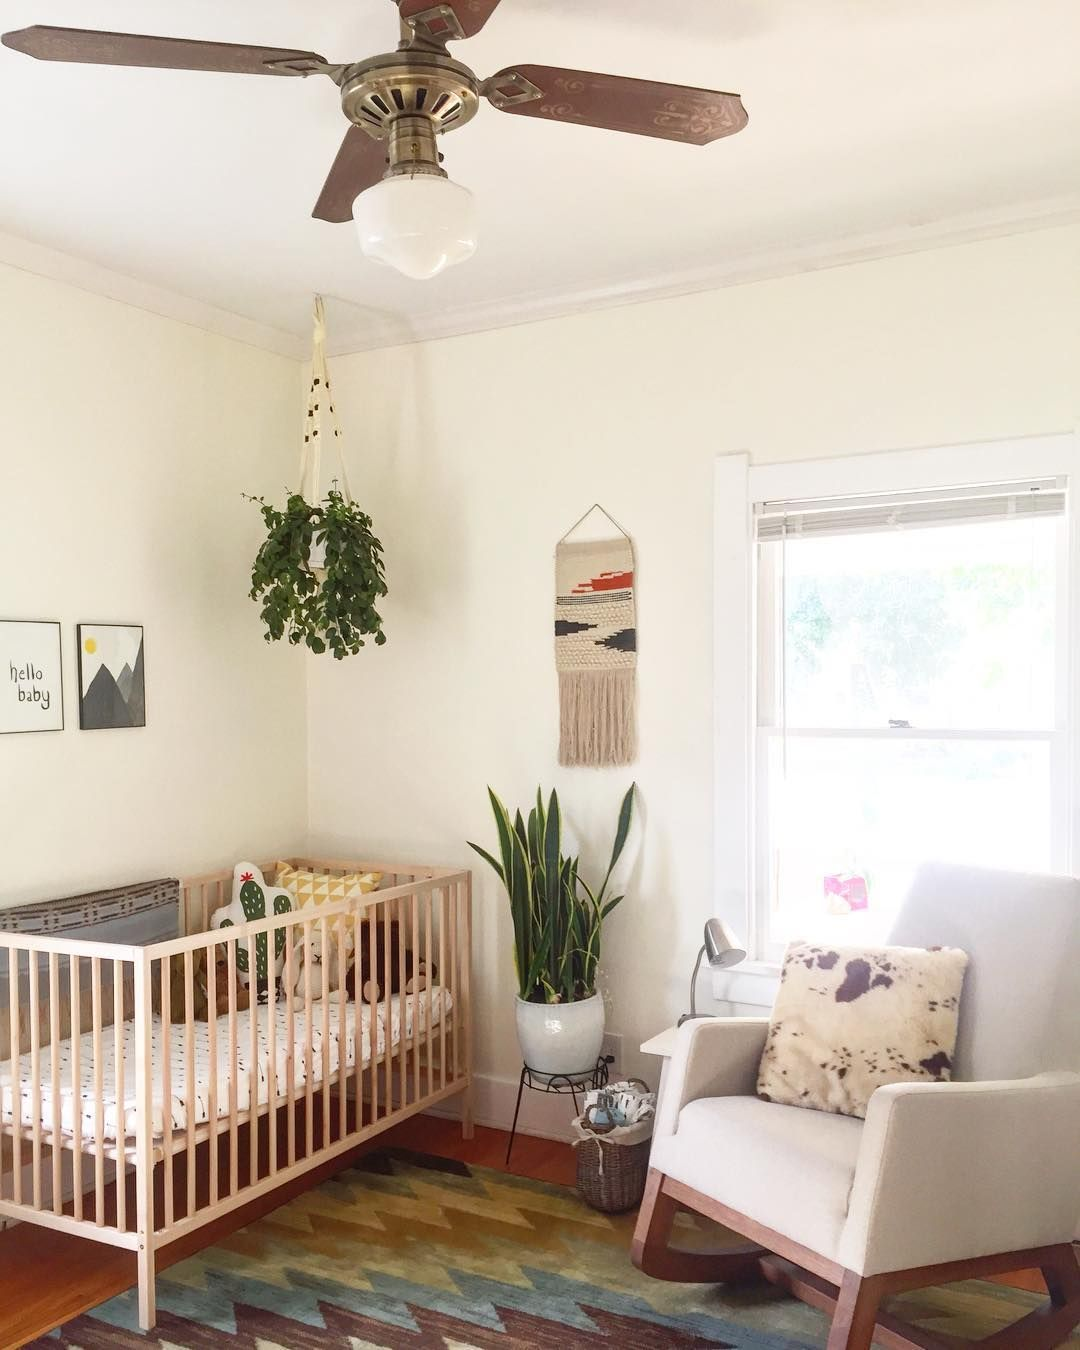 The lighting in this baby boy's nursery is the best 🌞 🍃is